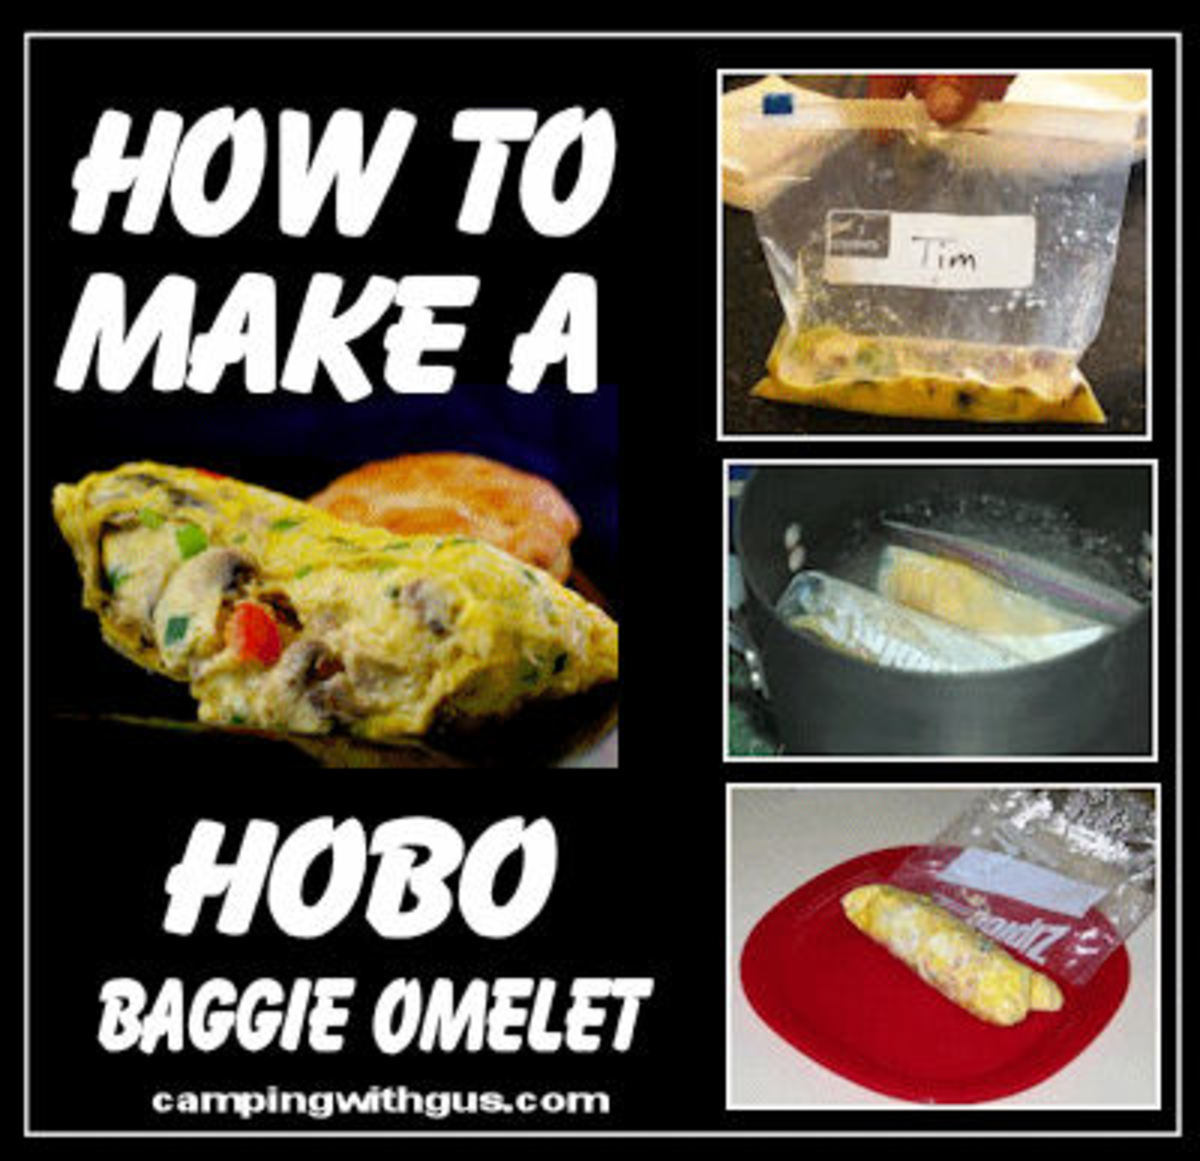 Hobo Baggie Omelet Graphic